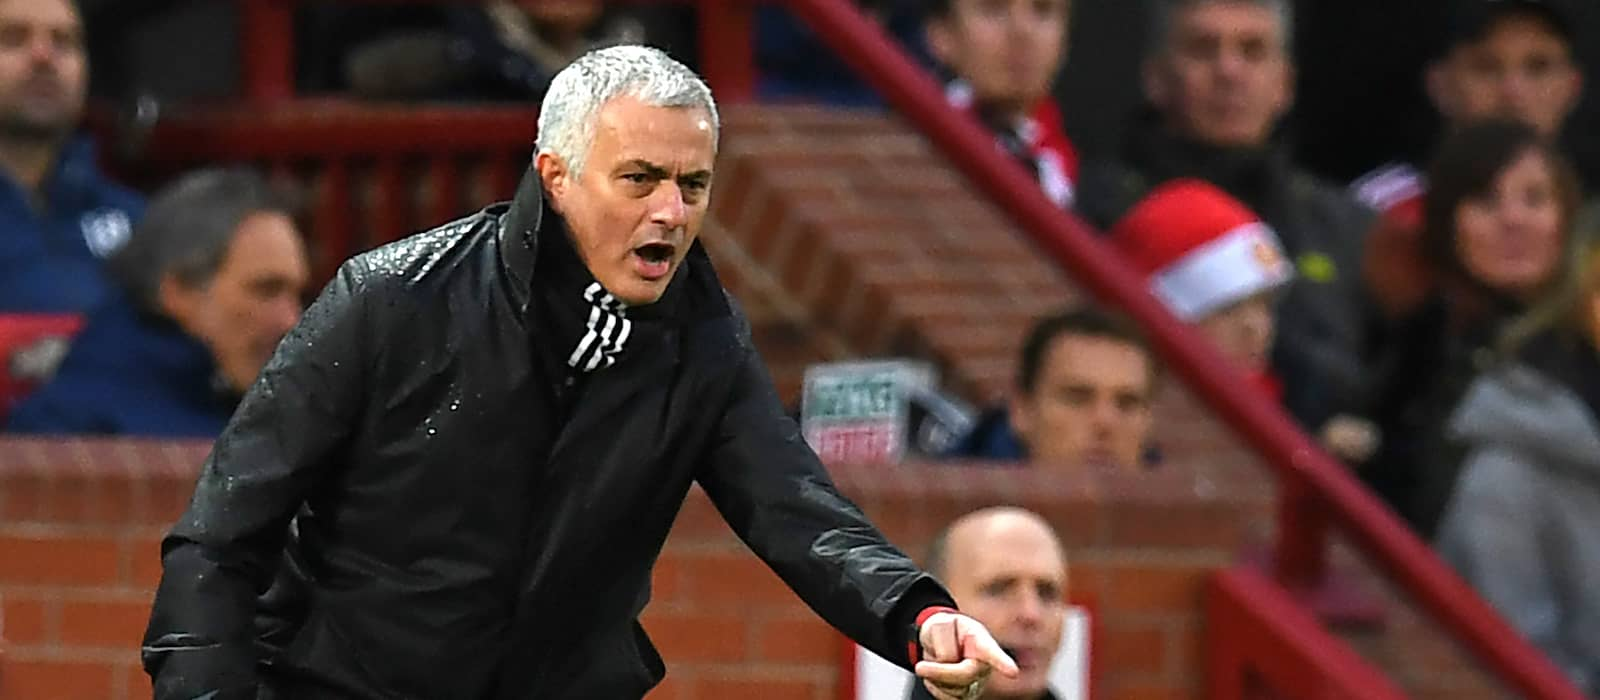 Jose Mourinho's job at Manchester United 'safe' despite Liverpool defeat – report